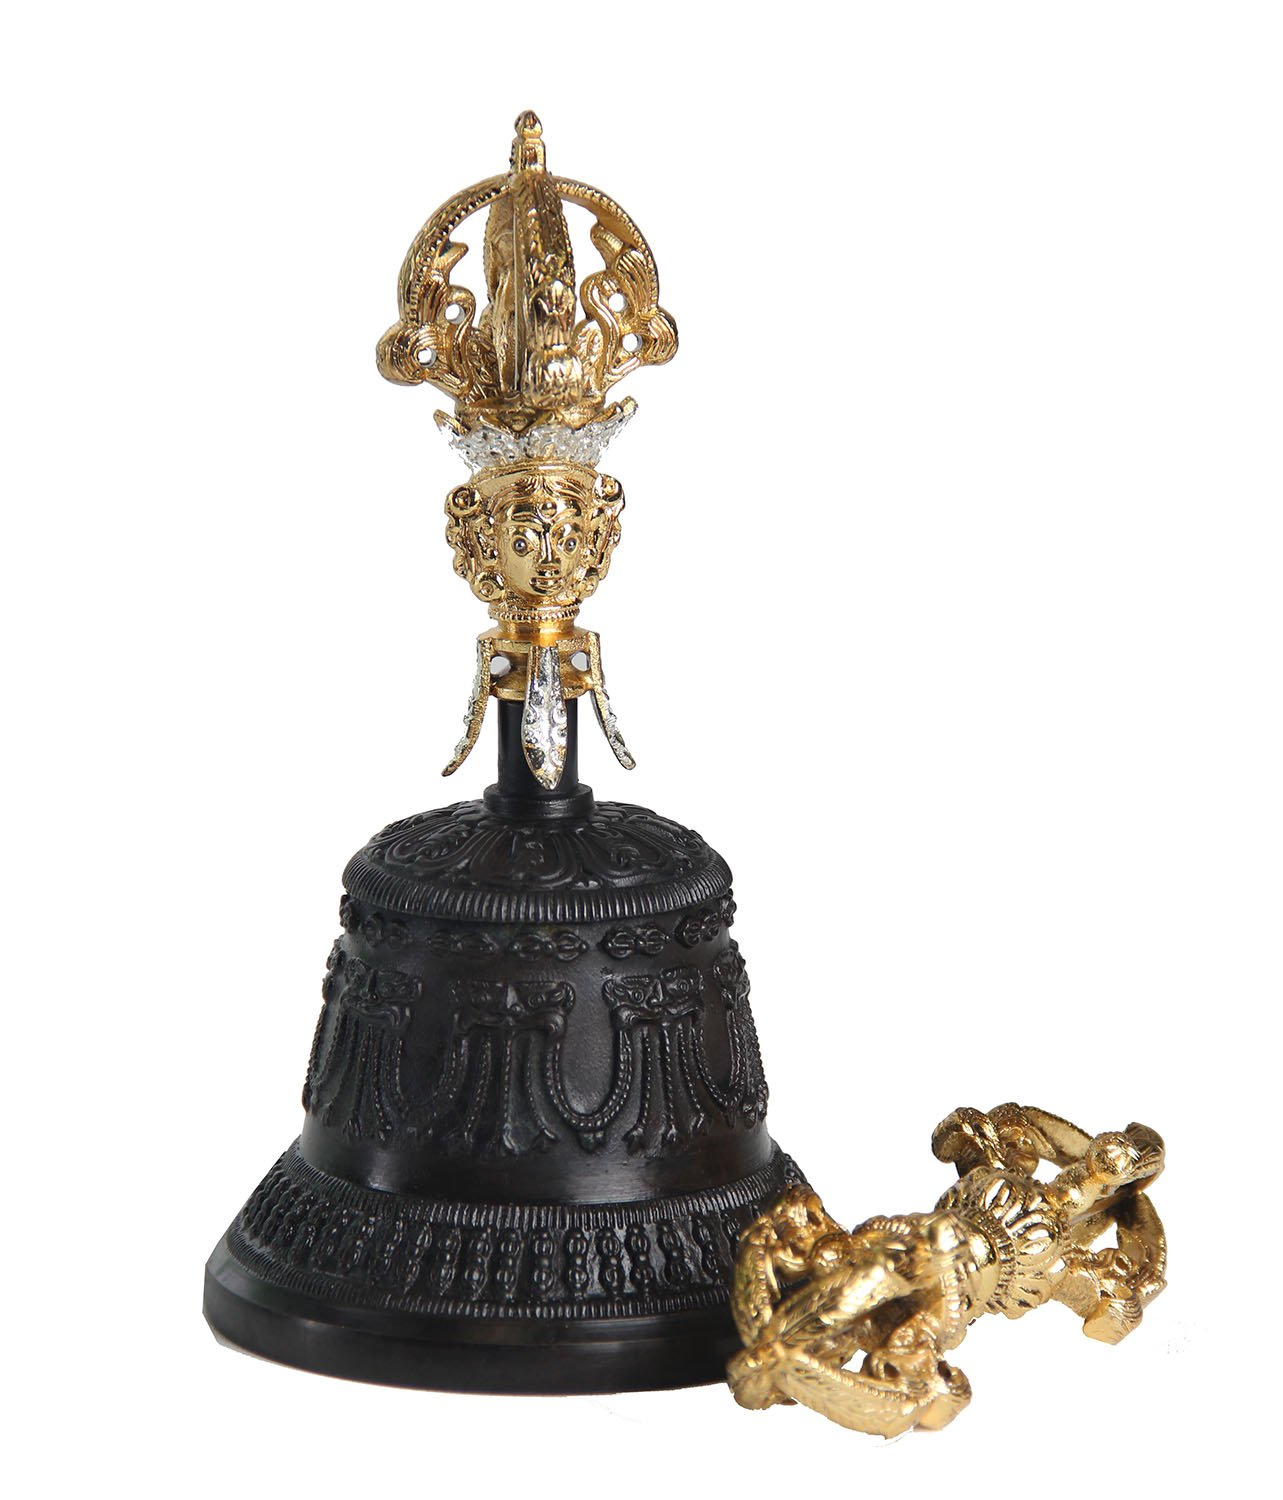 DharmaObjects Premium Quality Tibetan Buddhist Bronze Bell and Dorje Set by DharmaObjects